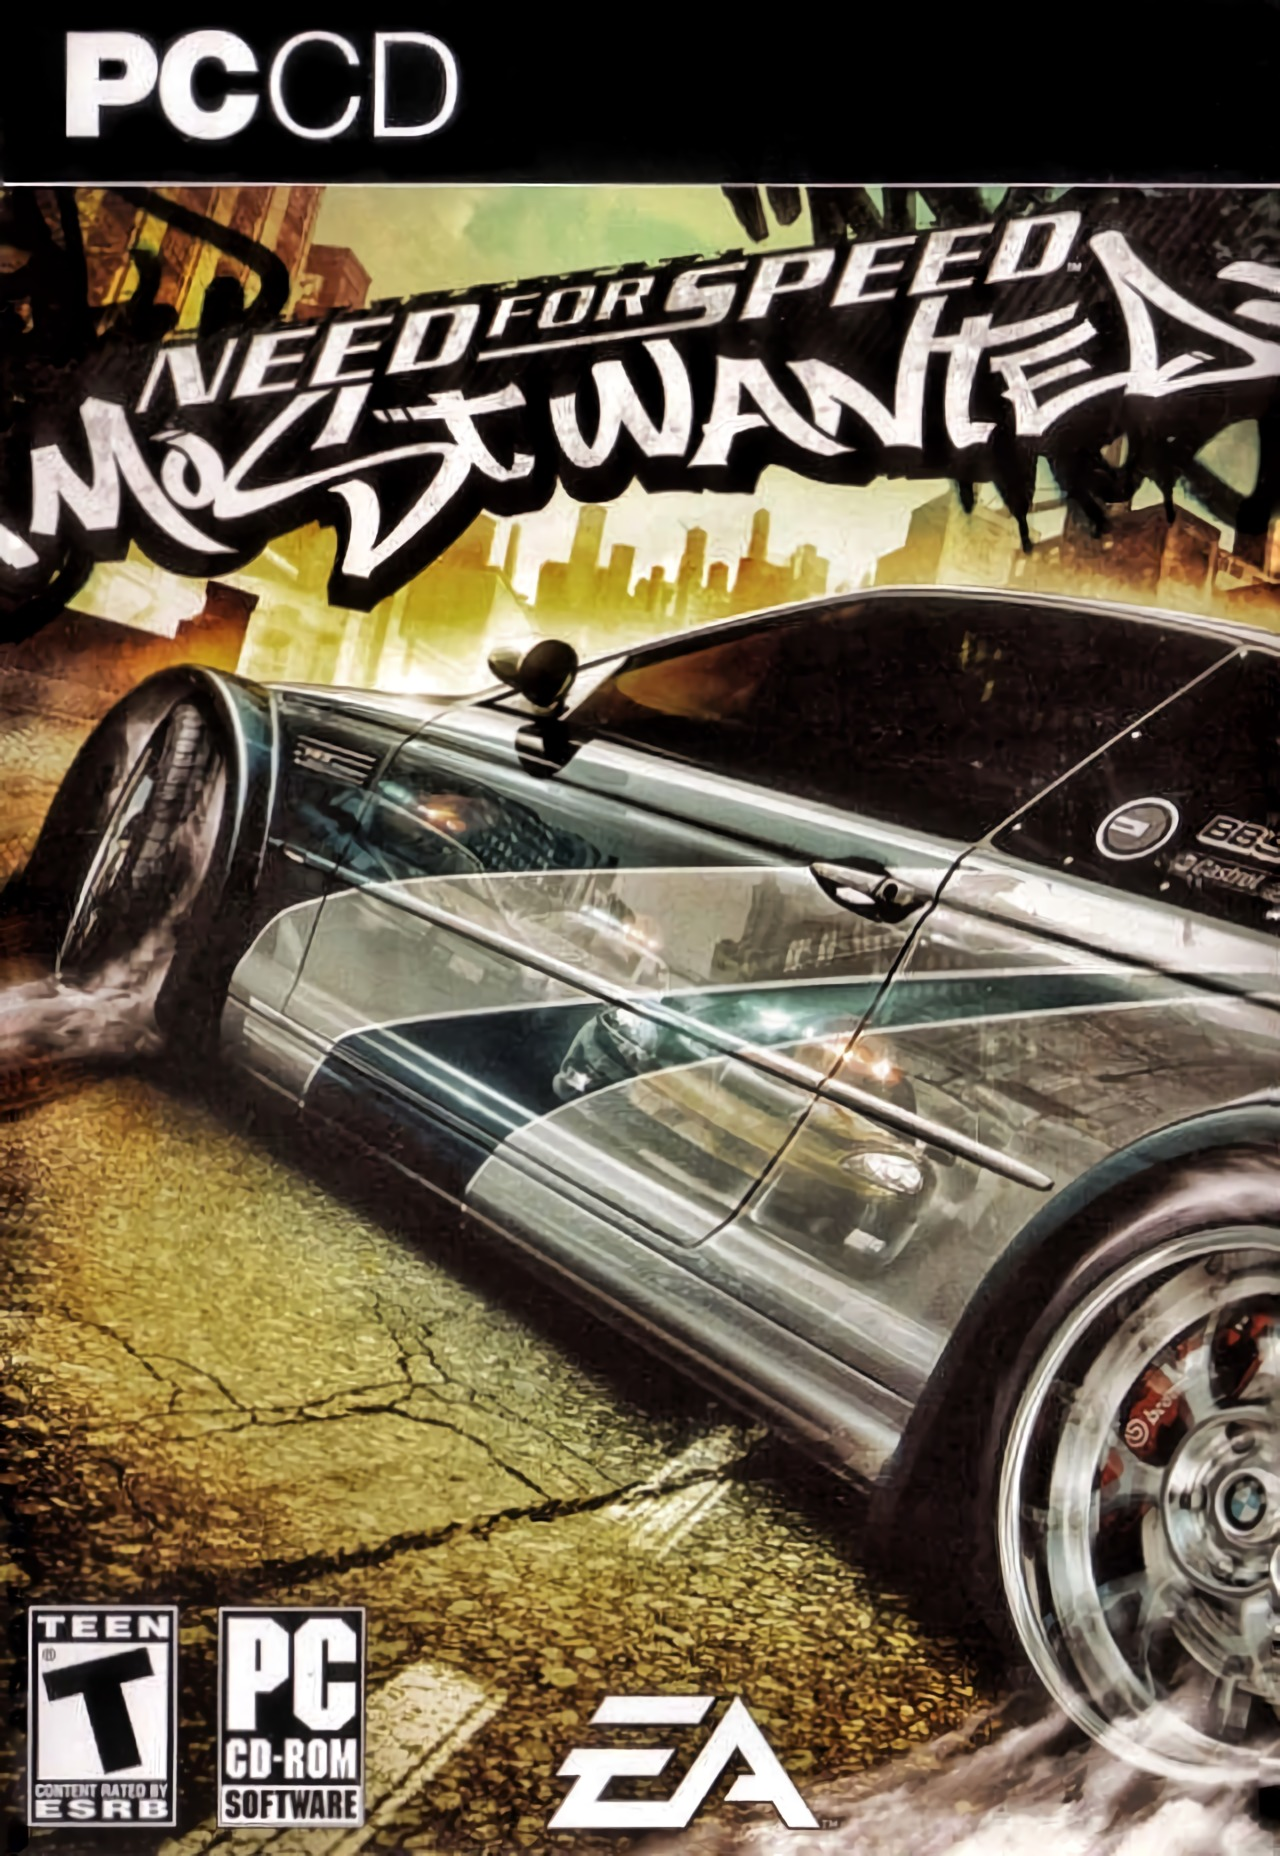 download need for speed pro street pc single link